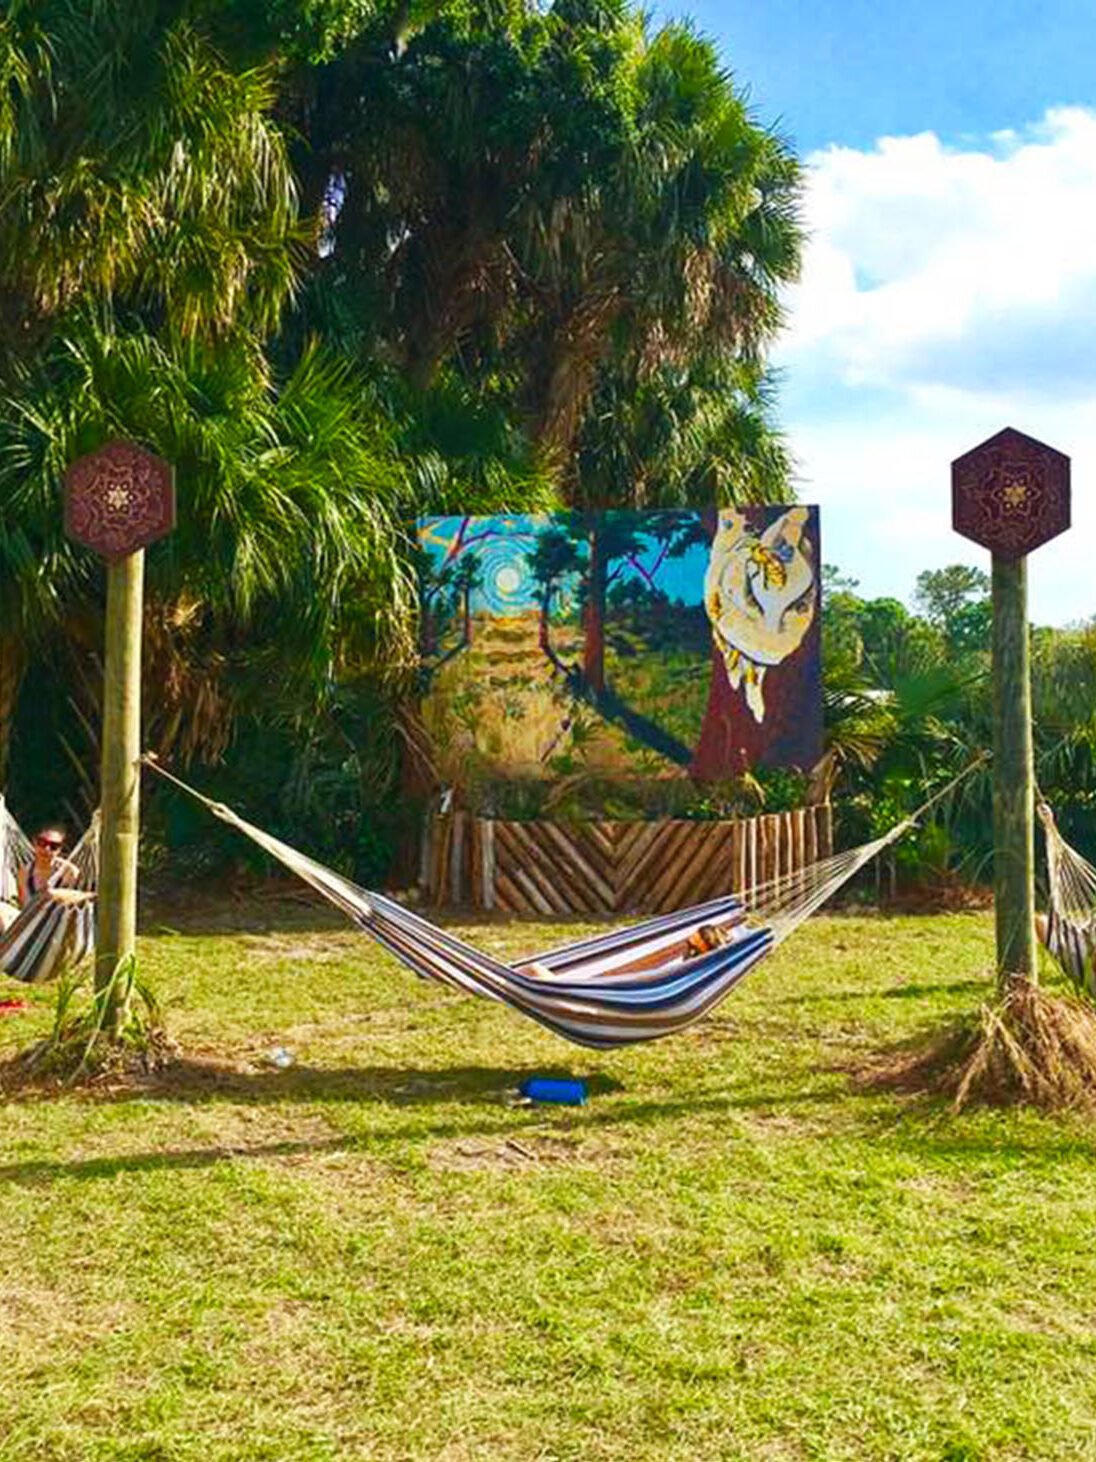 Bee Aware mural at the Okeechobee Music Festival. Created by heartspace art, this mural has a message about the importance of bees in our ecosystem. This photo shows the entire installation including the hammock hang out.